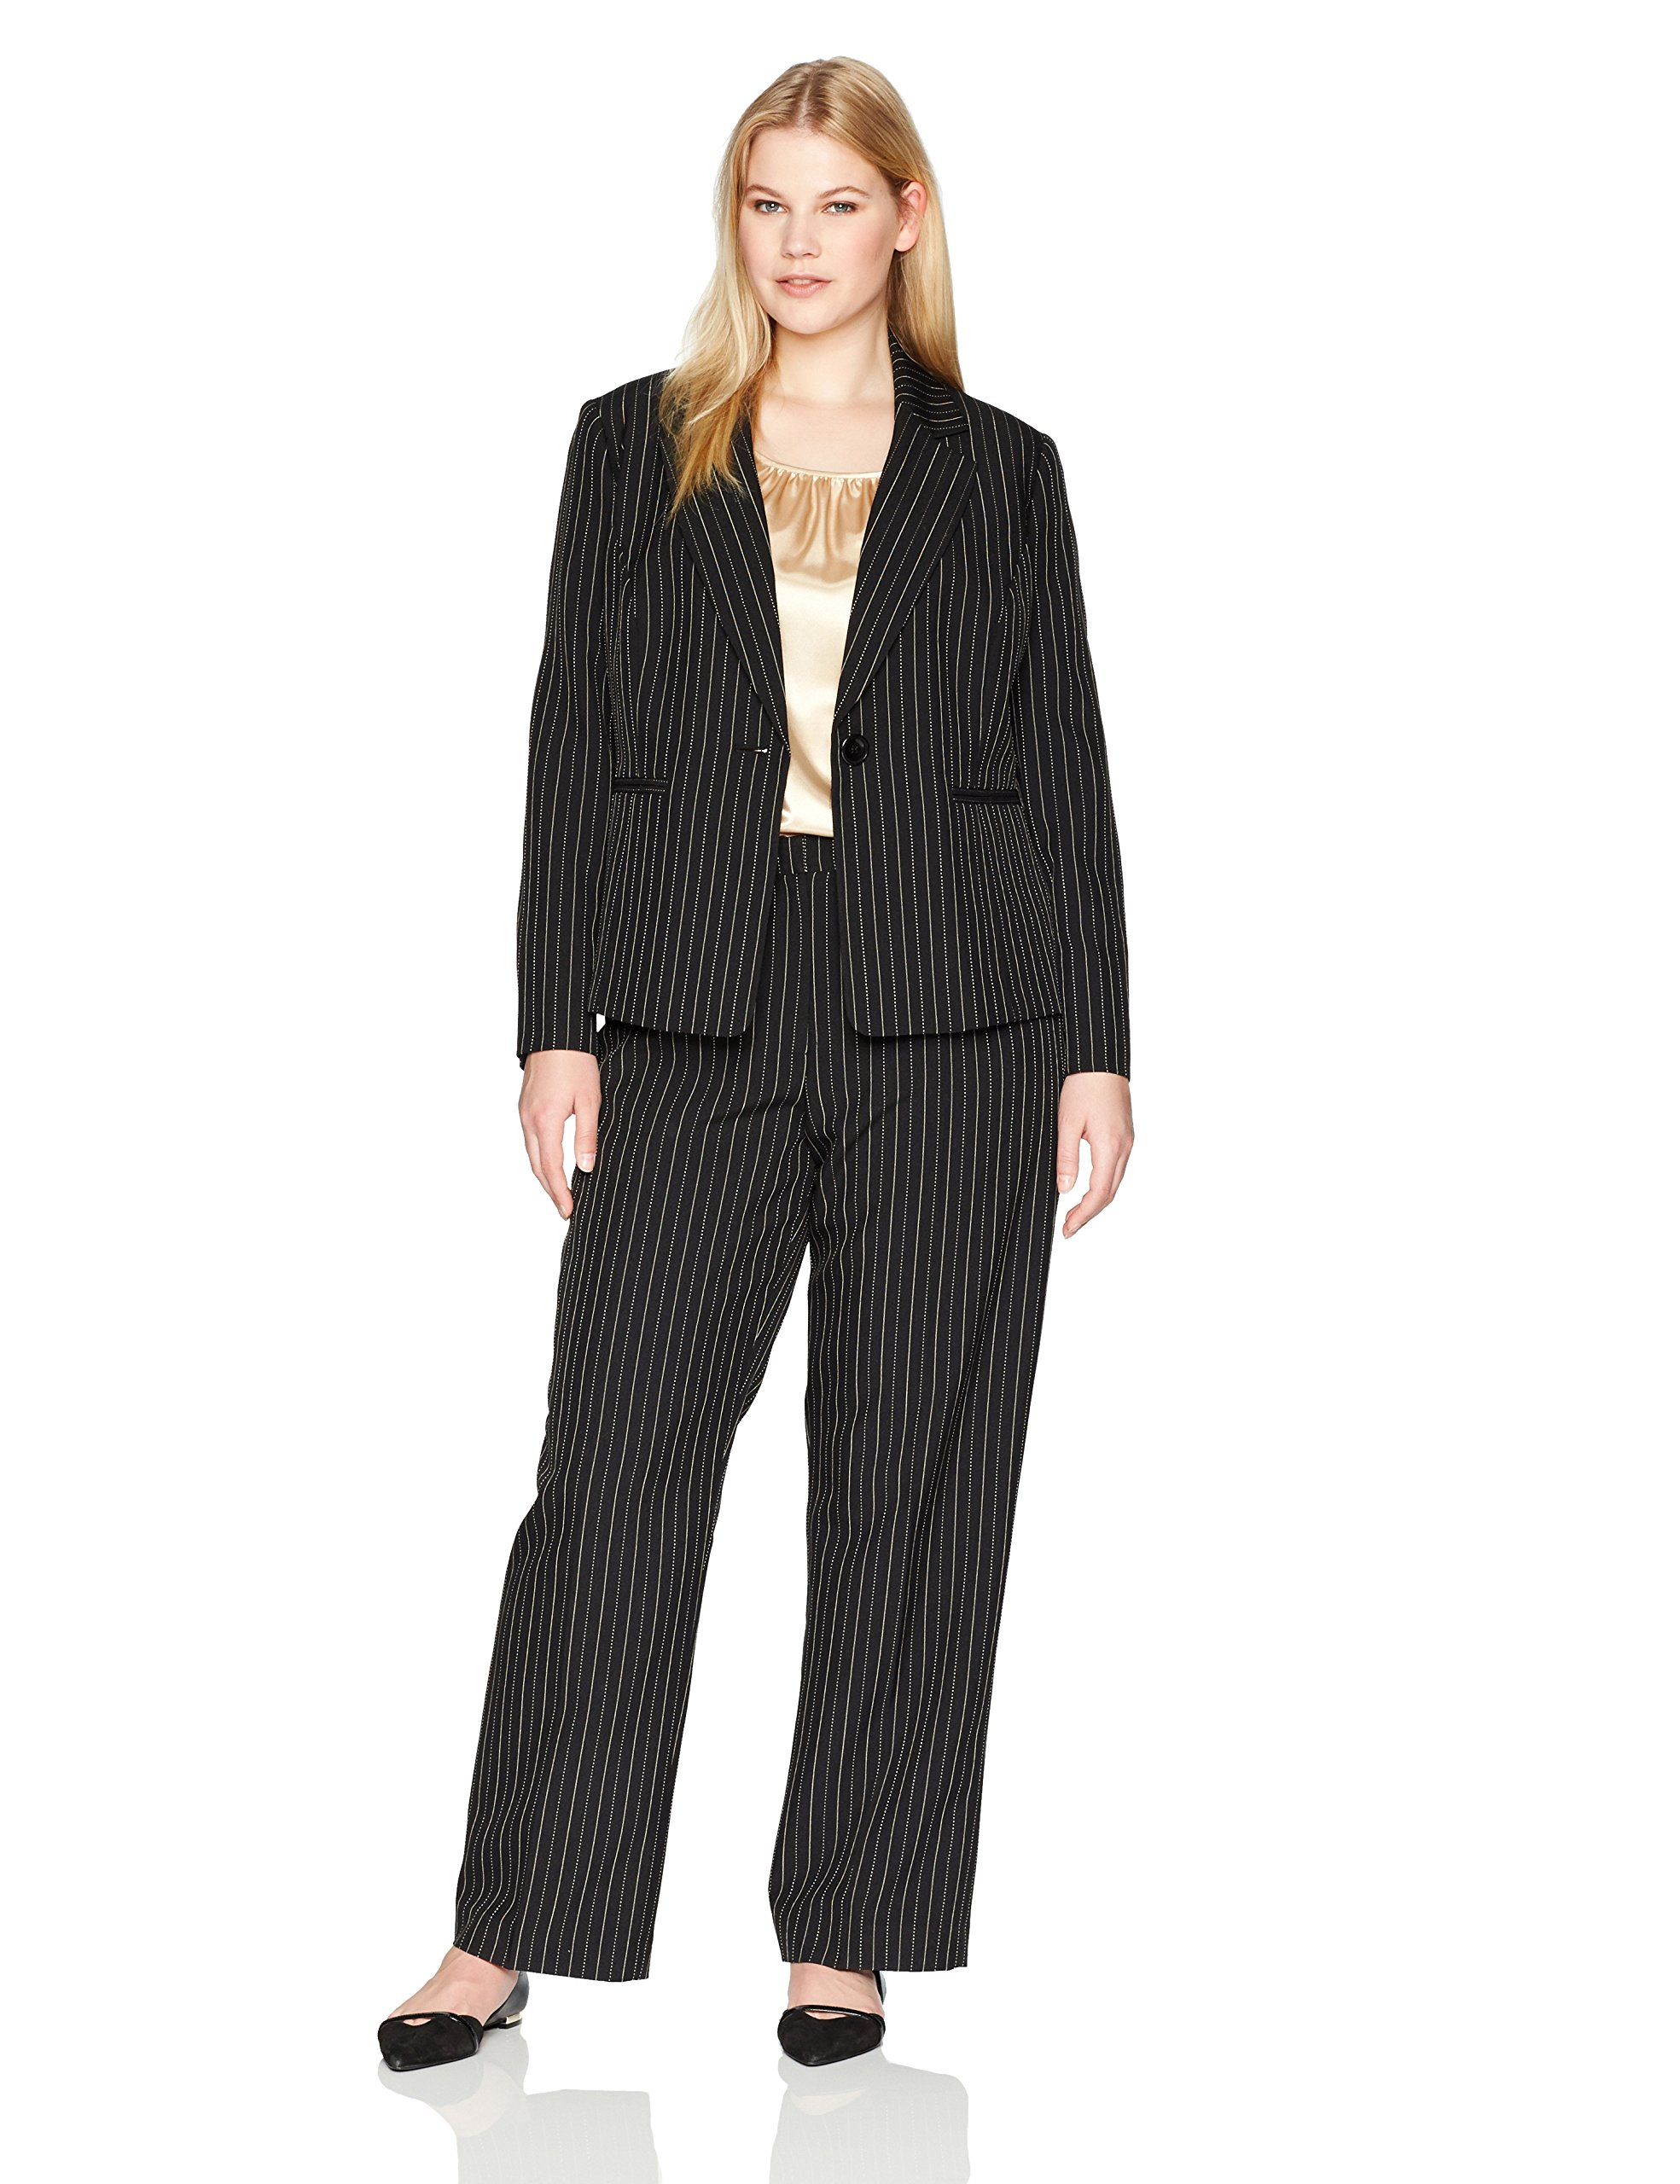 Le Suit Women's Plus Size Pinstripe 1 Button Pant Suit with Cami, Black/Beach, 20W by Le Suit